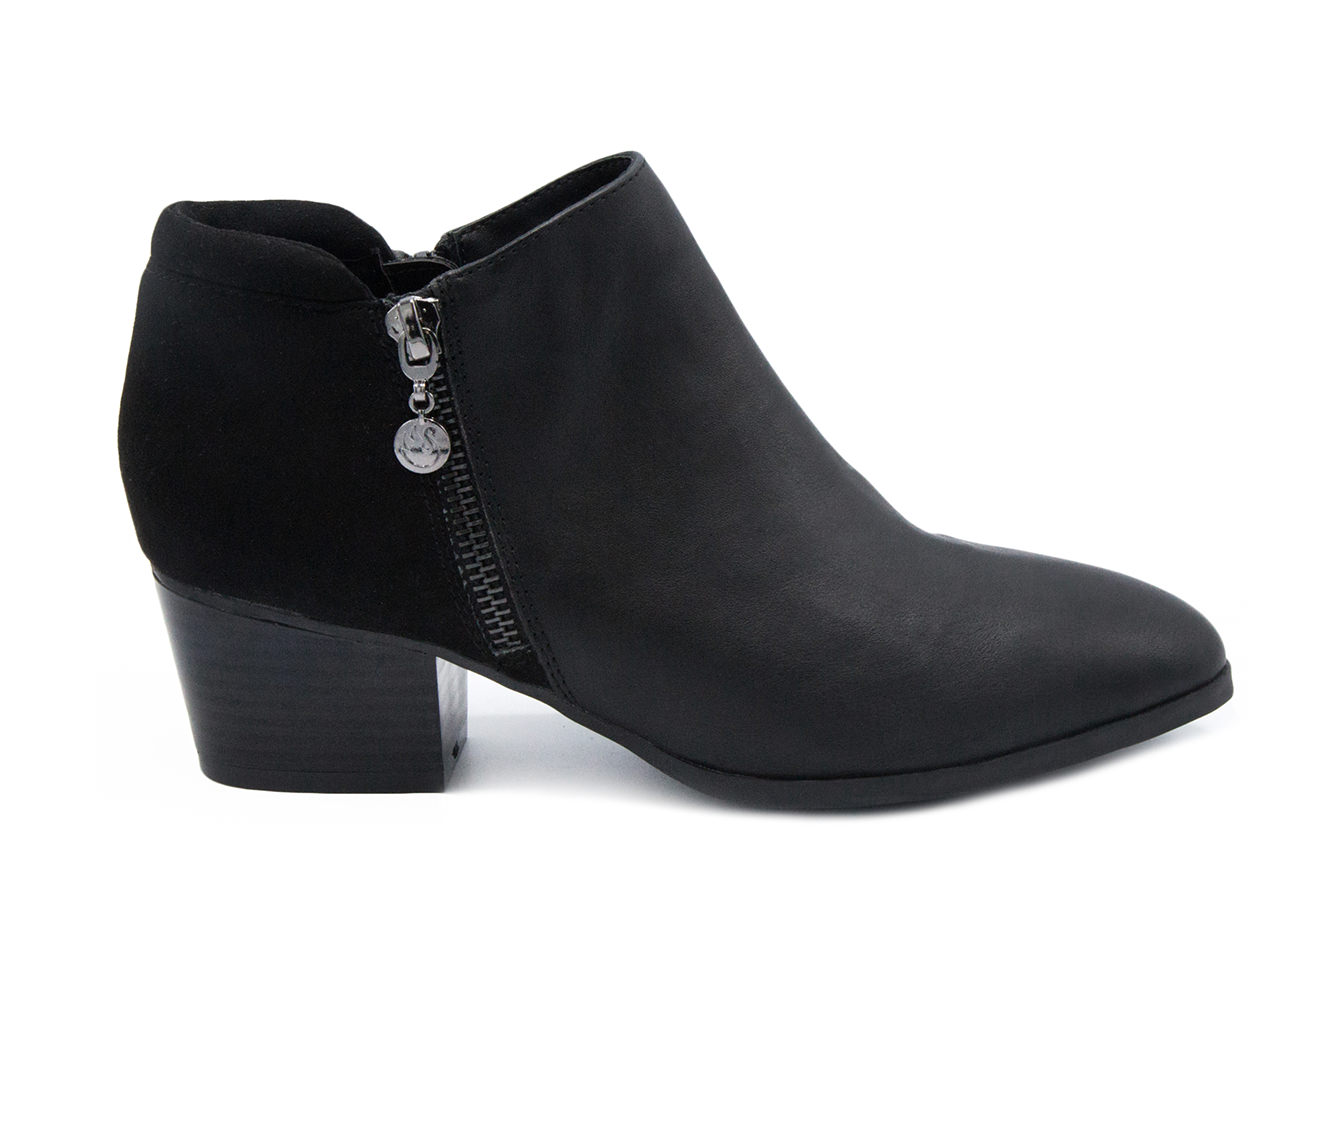 Gloria Vanderbilt Deanna Women's Boots (Black - Faux Leather)